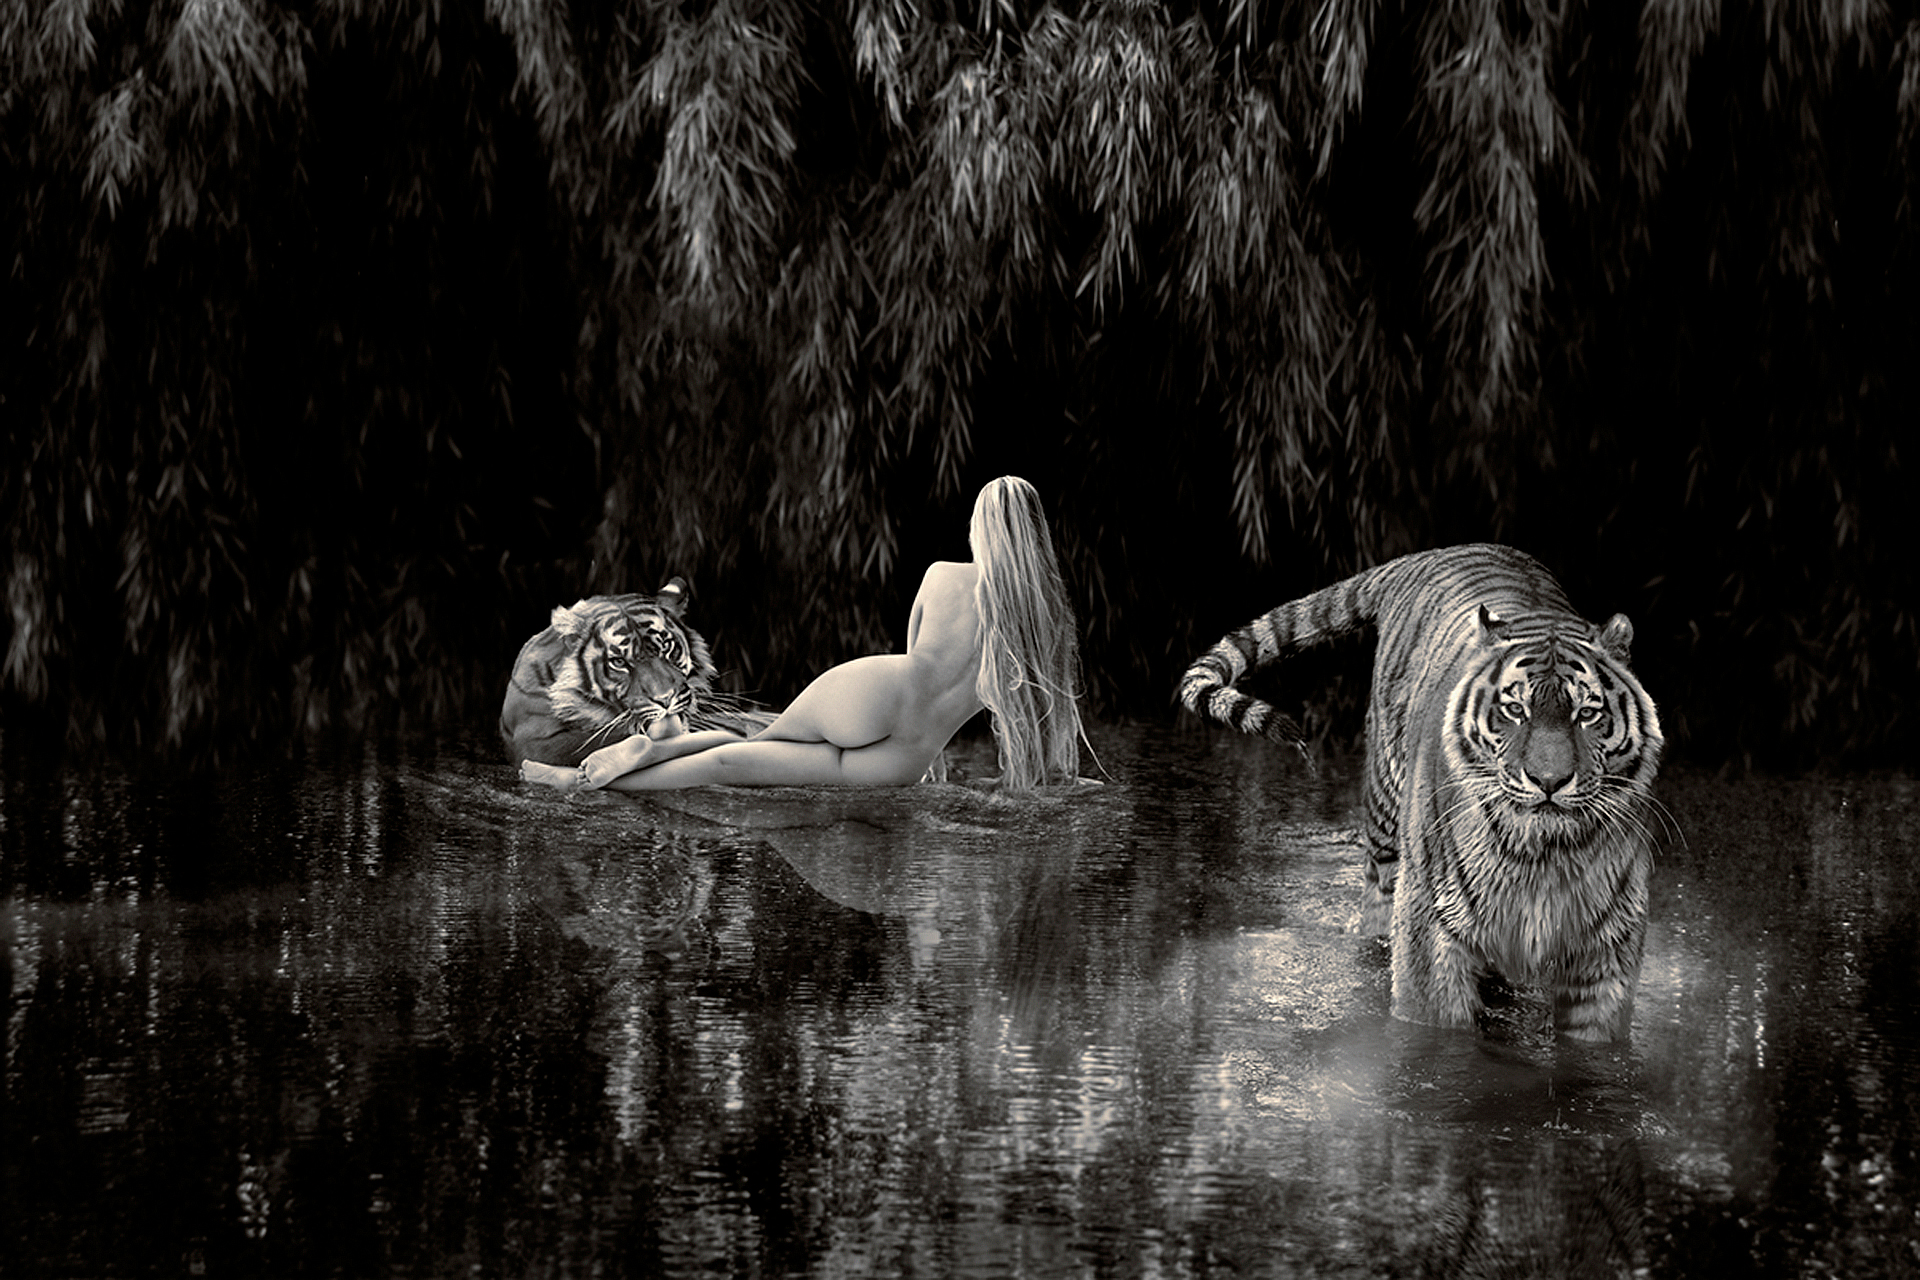 a woman bathing with tigers